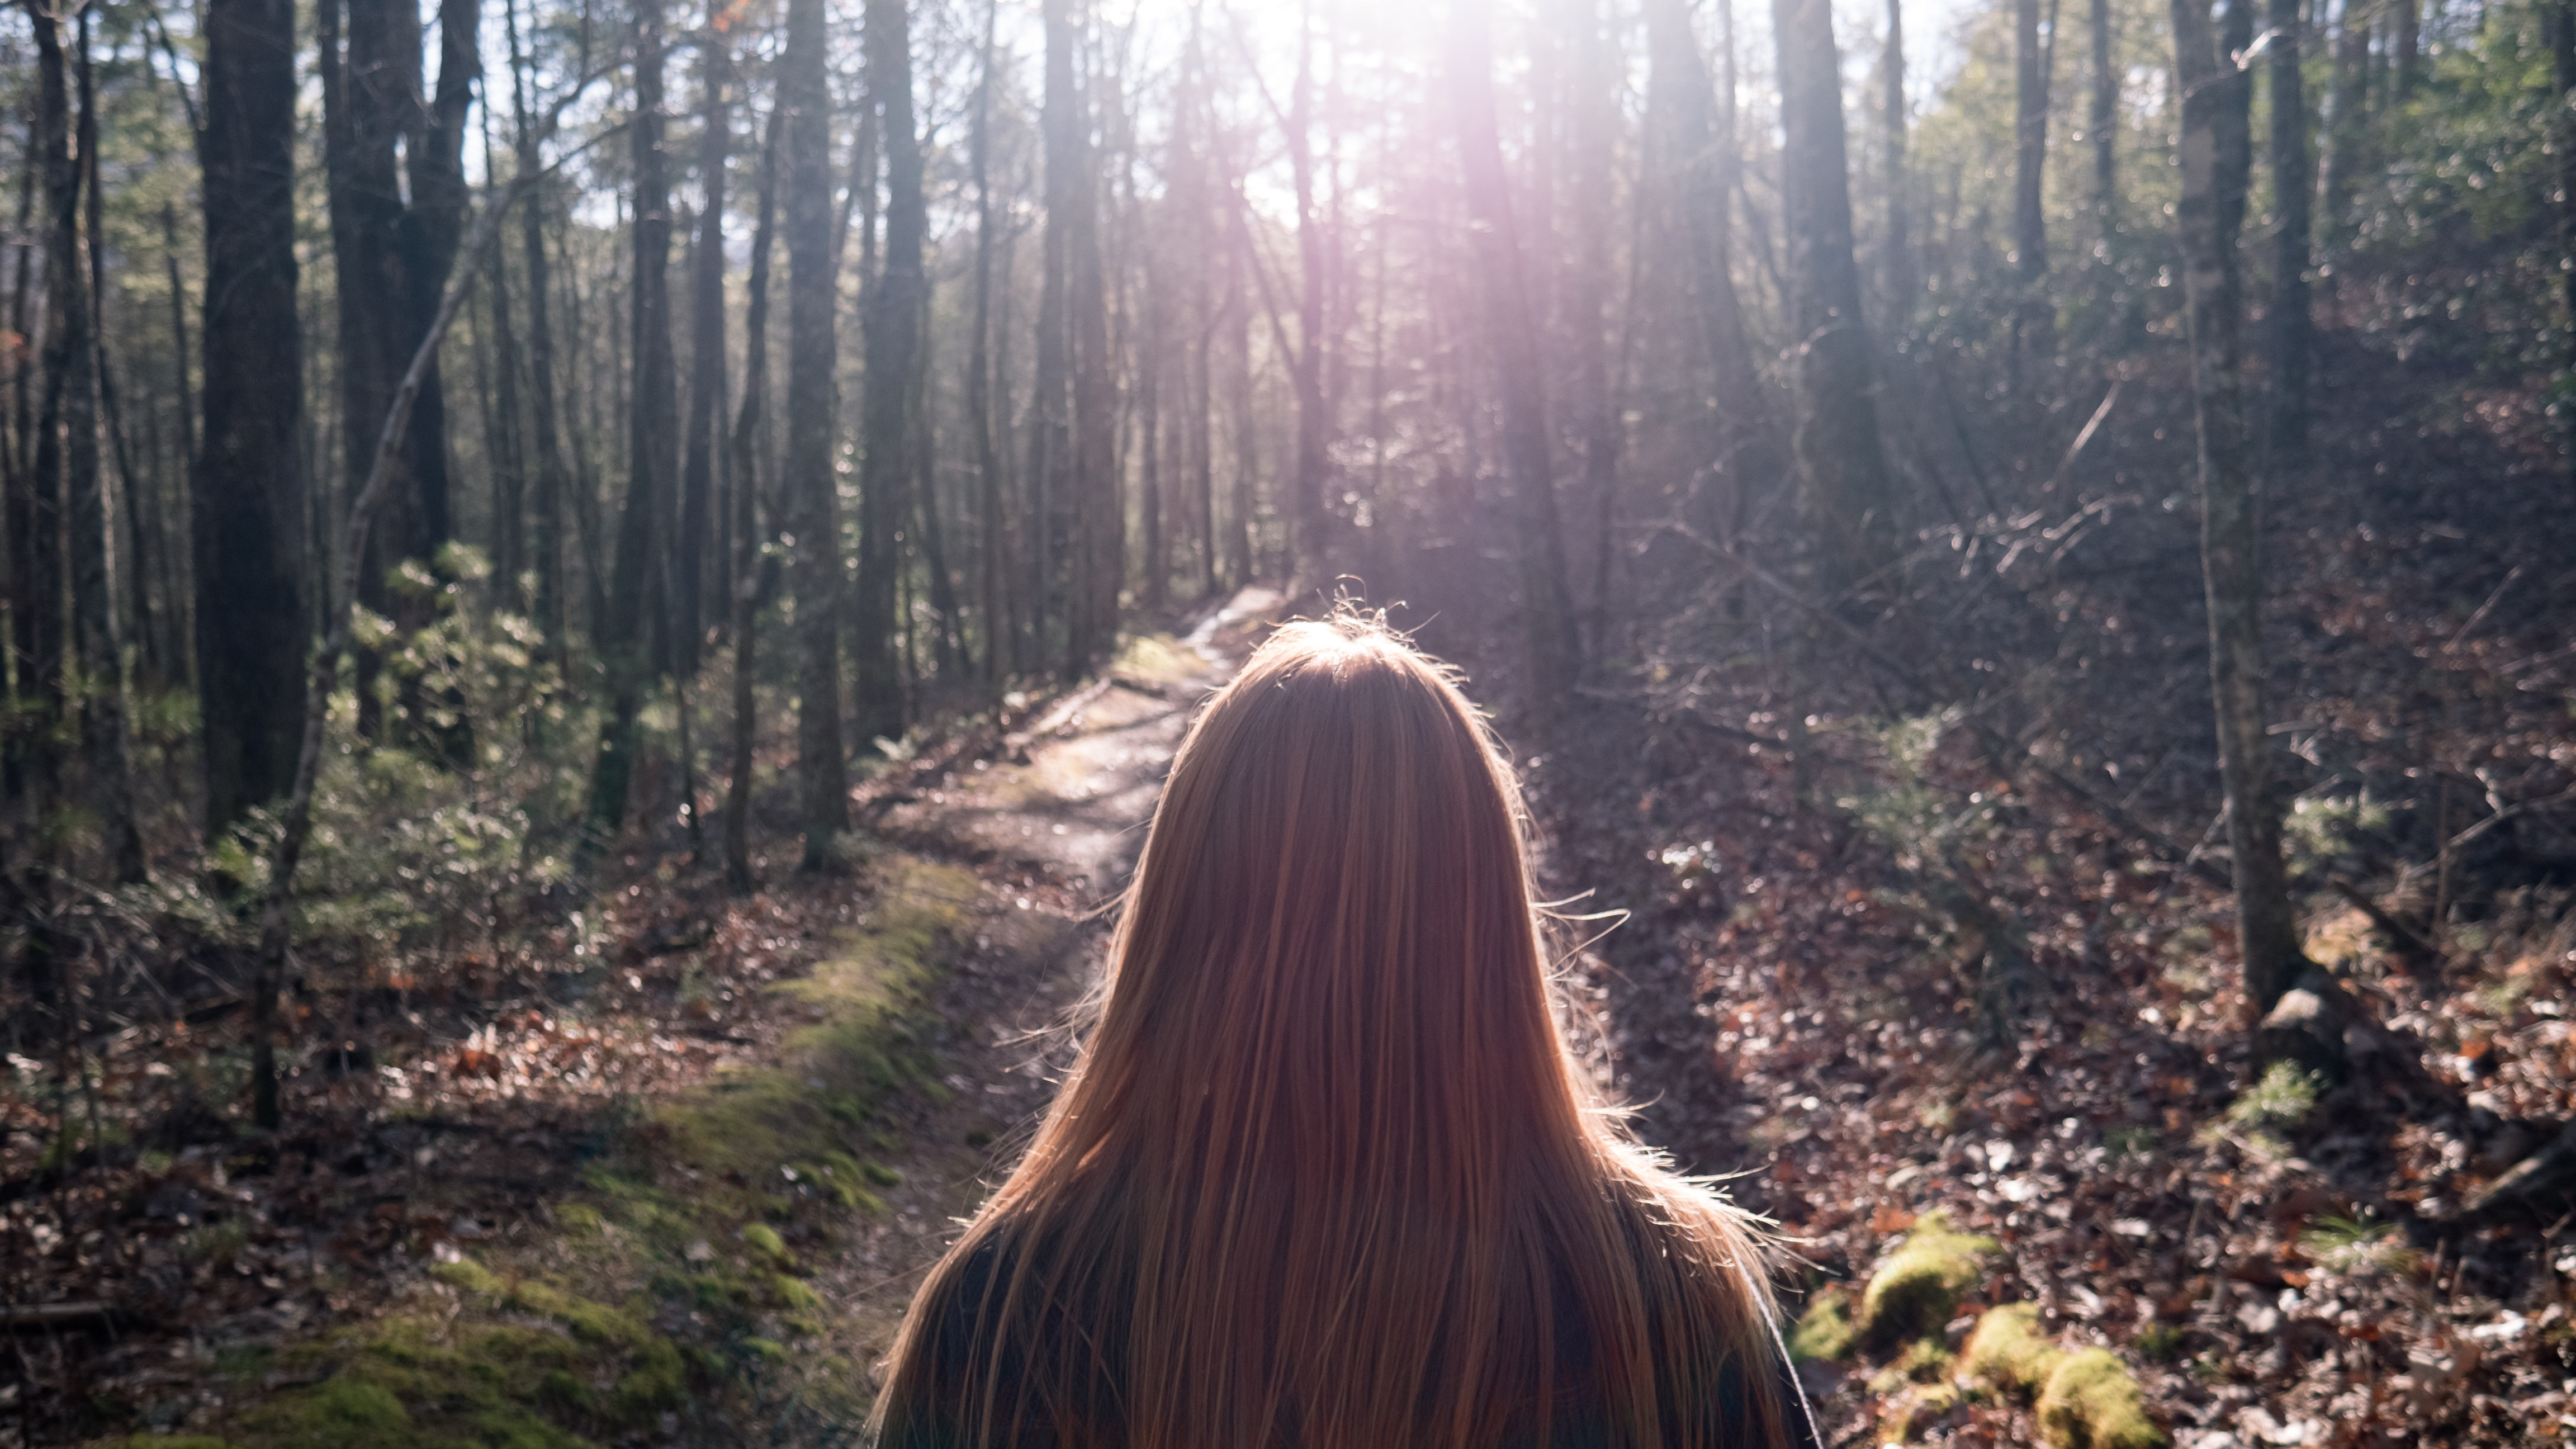 Woman in Black Top Standing Between Trees, Backlight, Outdoors, Trees, Trail, HQ Photo